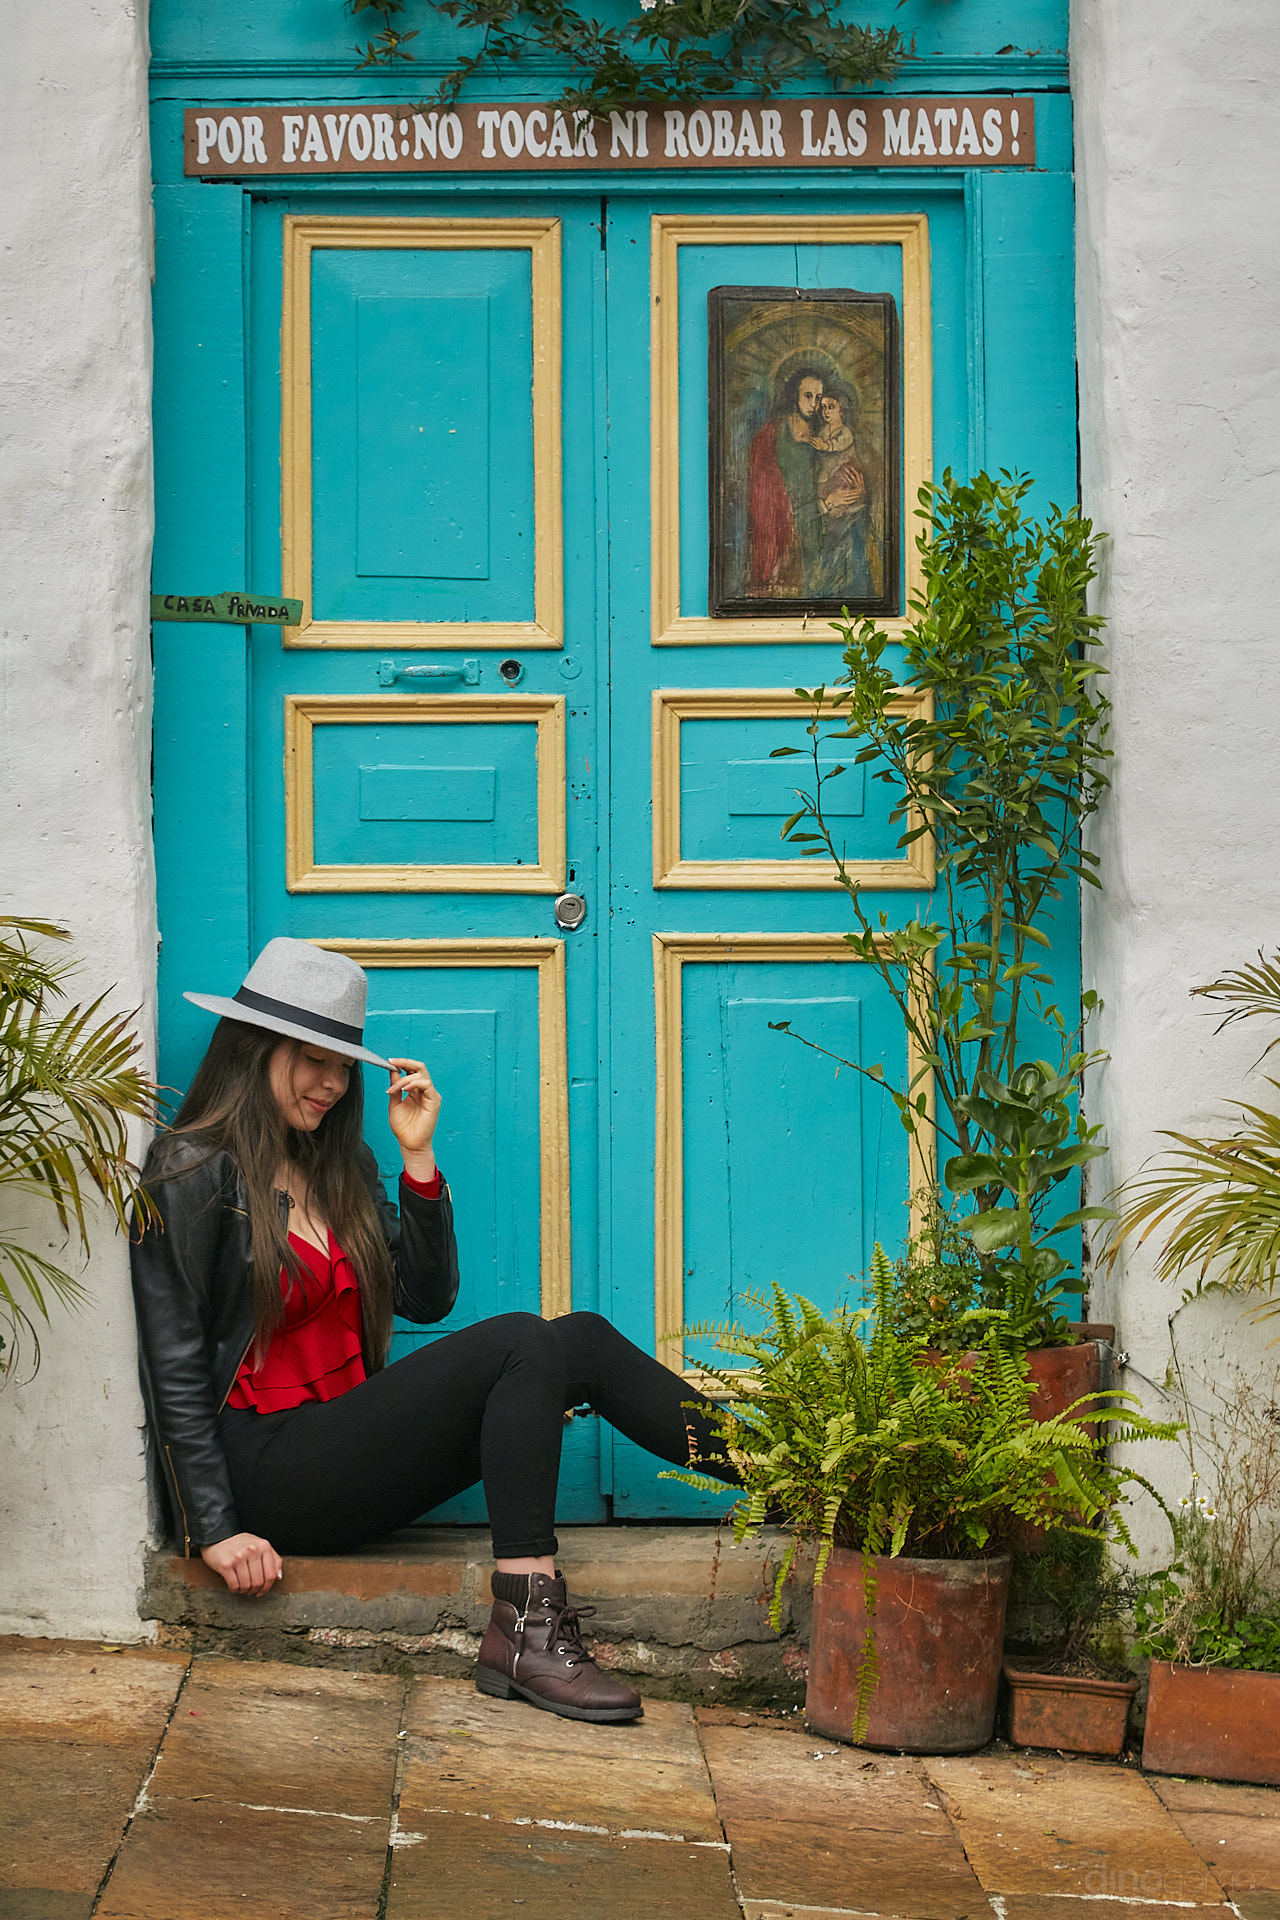 Dino Gomez Is An Award Winning Photographer Based In Queretaro And Doing Business In San Miguel De Allende, Mexico. He Provides Location Photography Services For Weddings, Fashion And Commercial Clients.